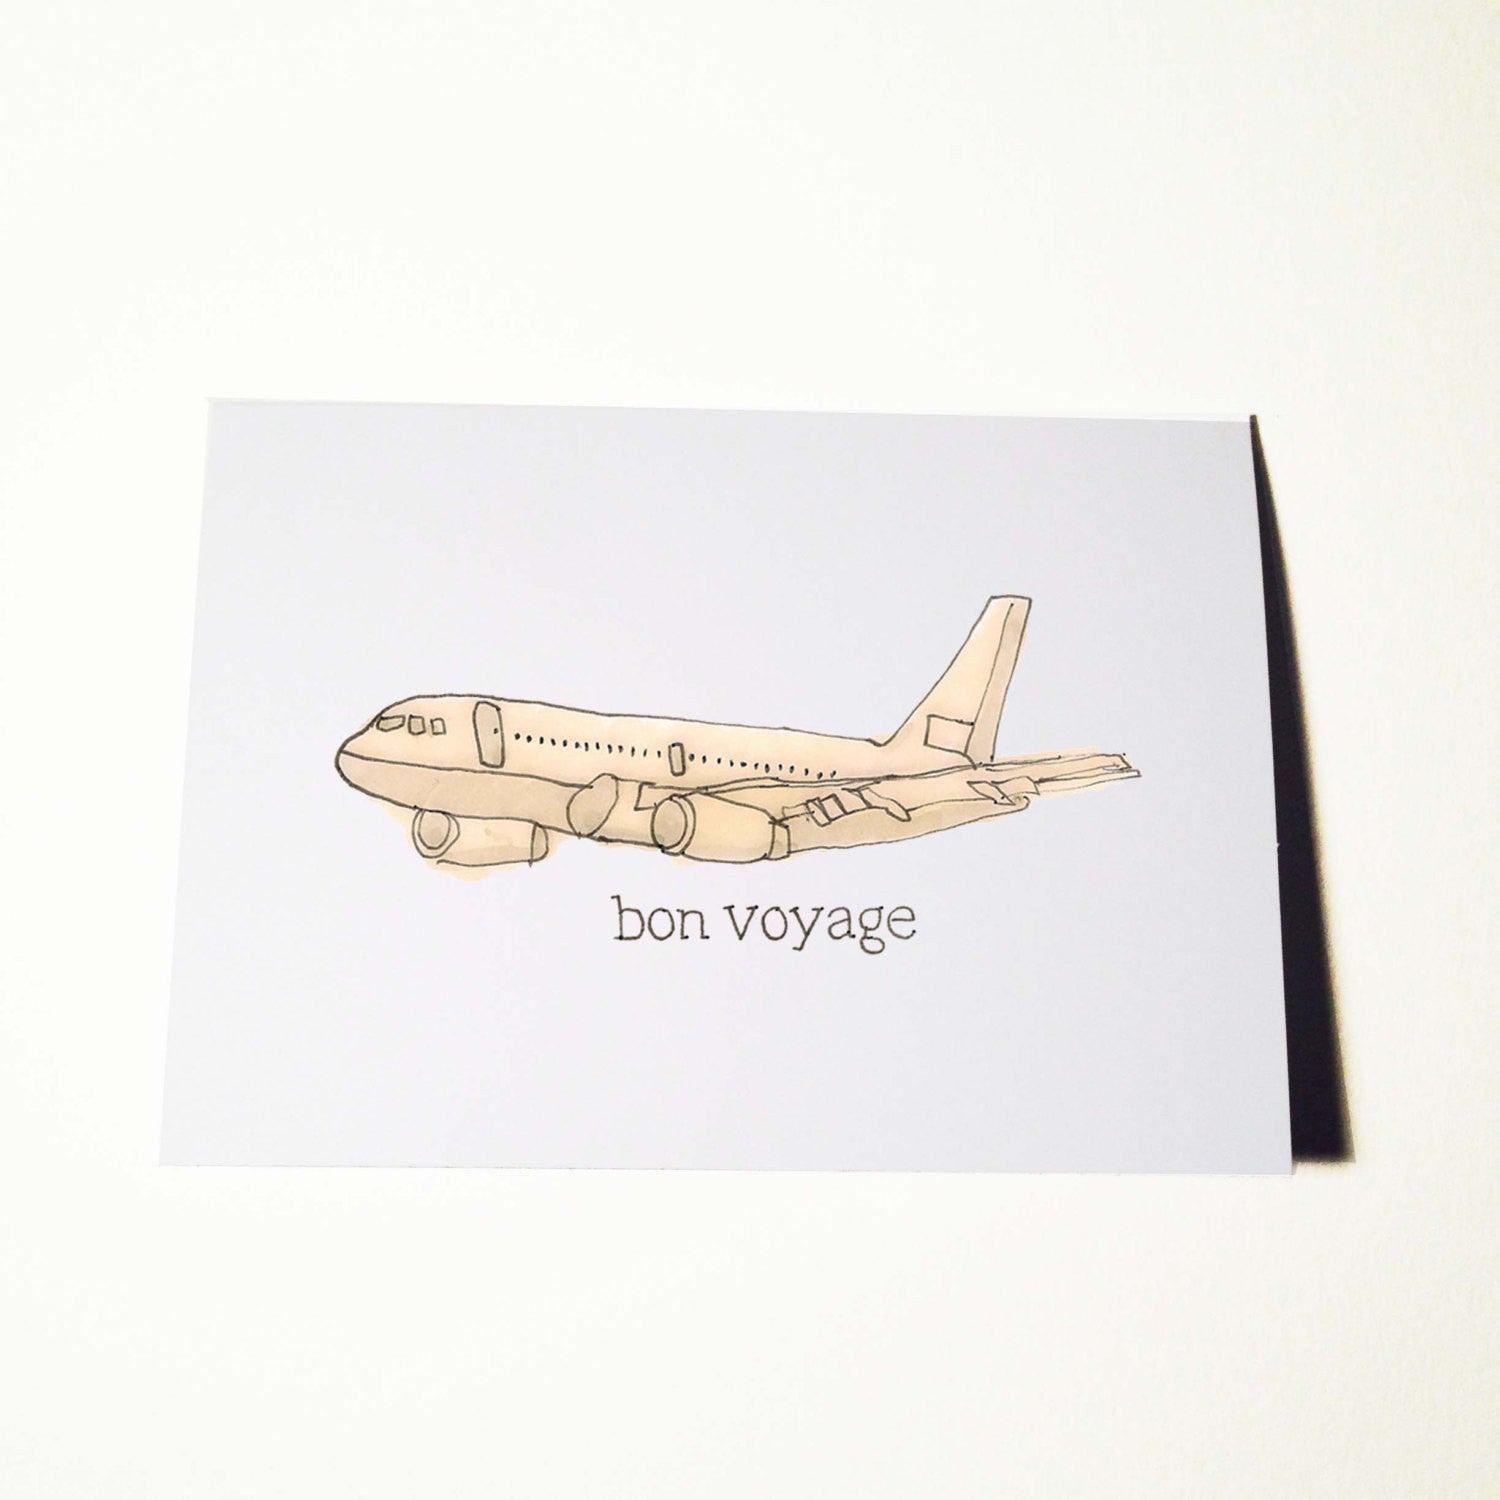 Farewell Bon Voyage Card ratbone skinny – Sick Birthday Cards